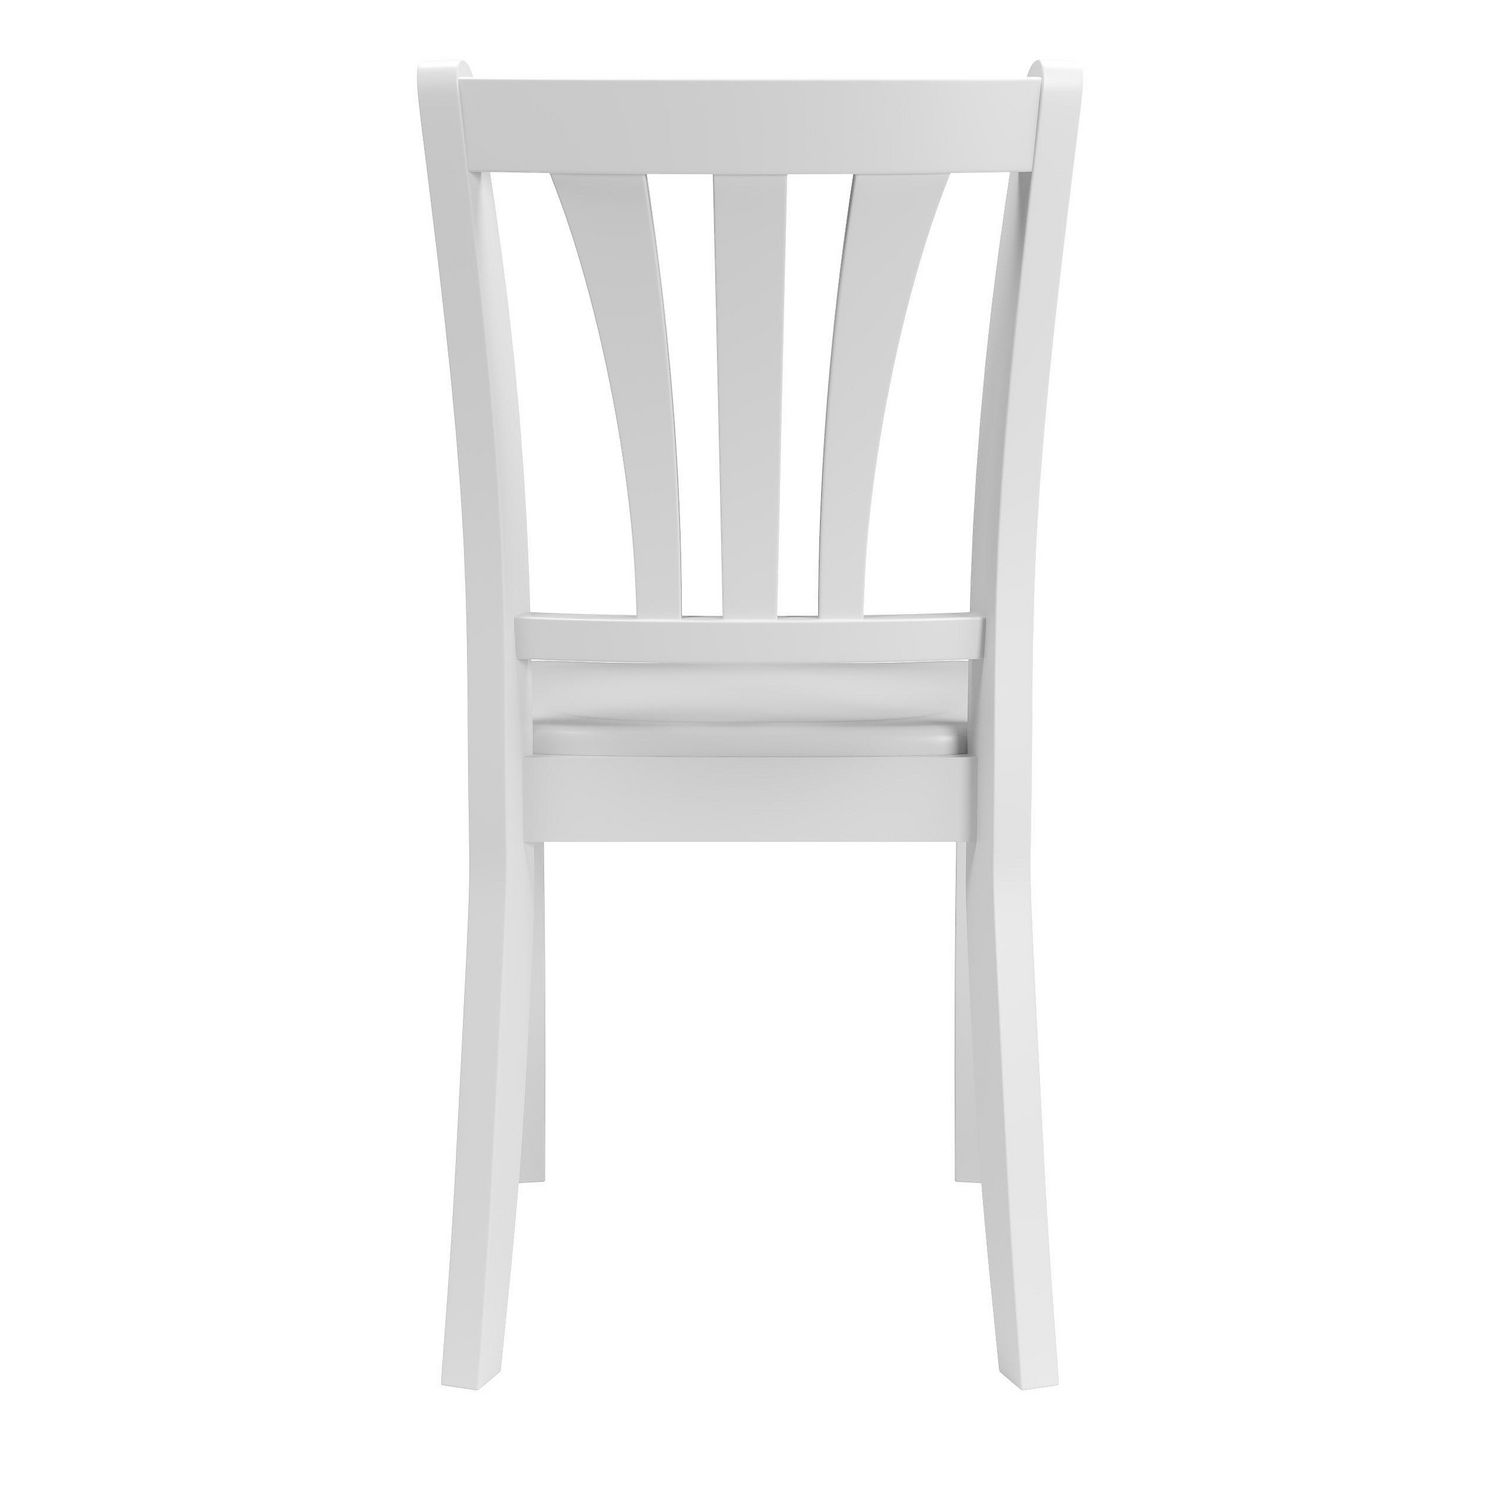 Corliving dillon curved vertical slat backrest white solid wood dining chairs walmart canada